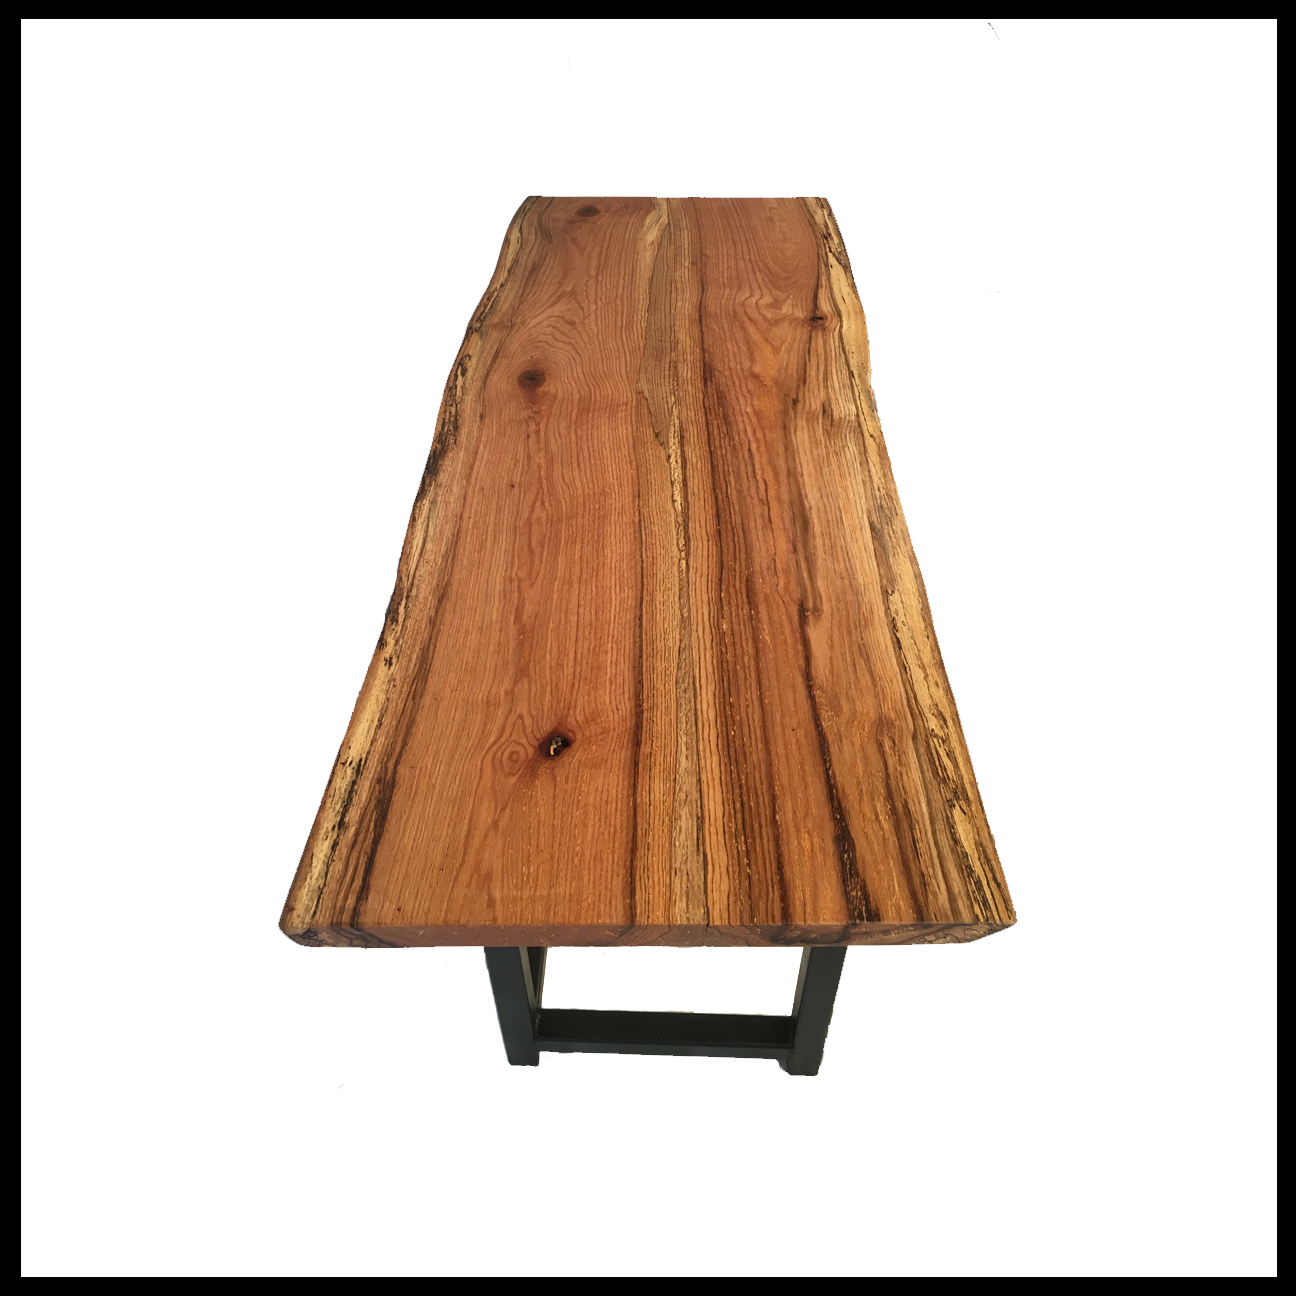 red oak desk top.jpg